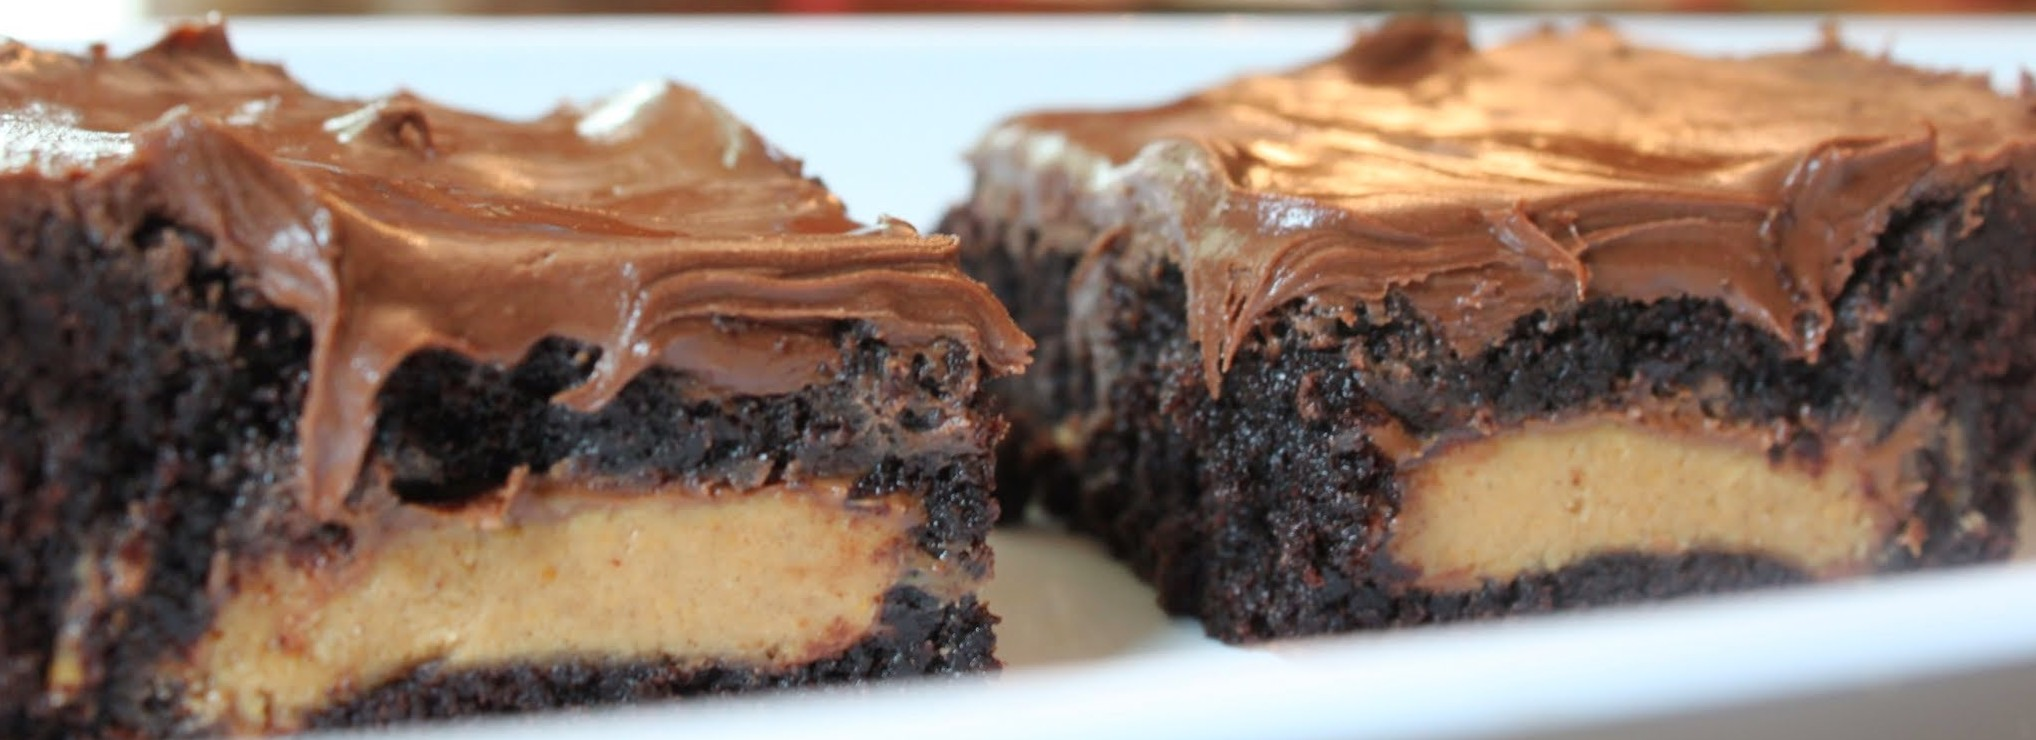 Peanut Butter Cup Stuffed Brownies